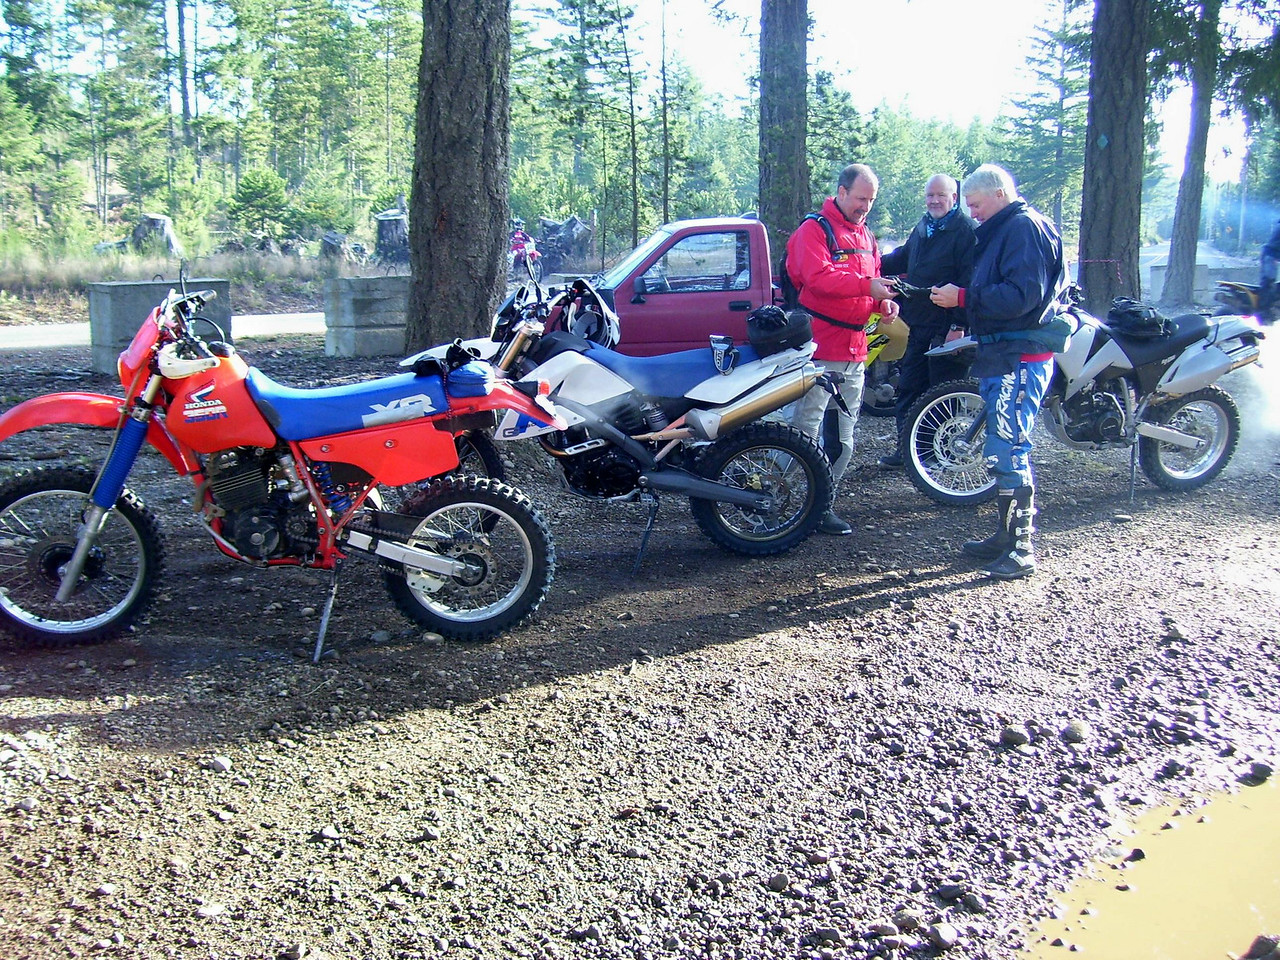 Getting ready to go. It's about 35 degrees, Tod, Paul, and Wild Bill.